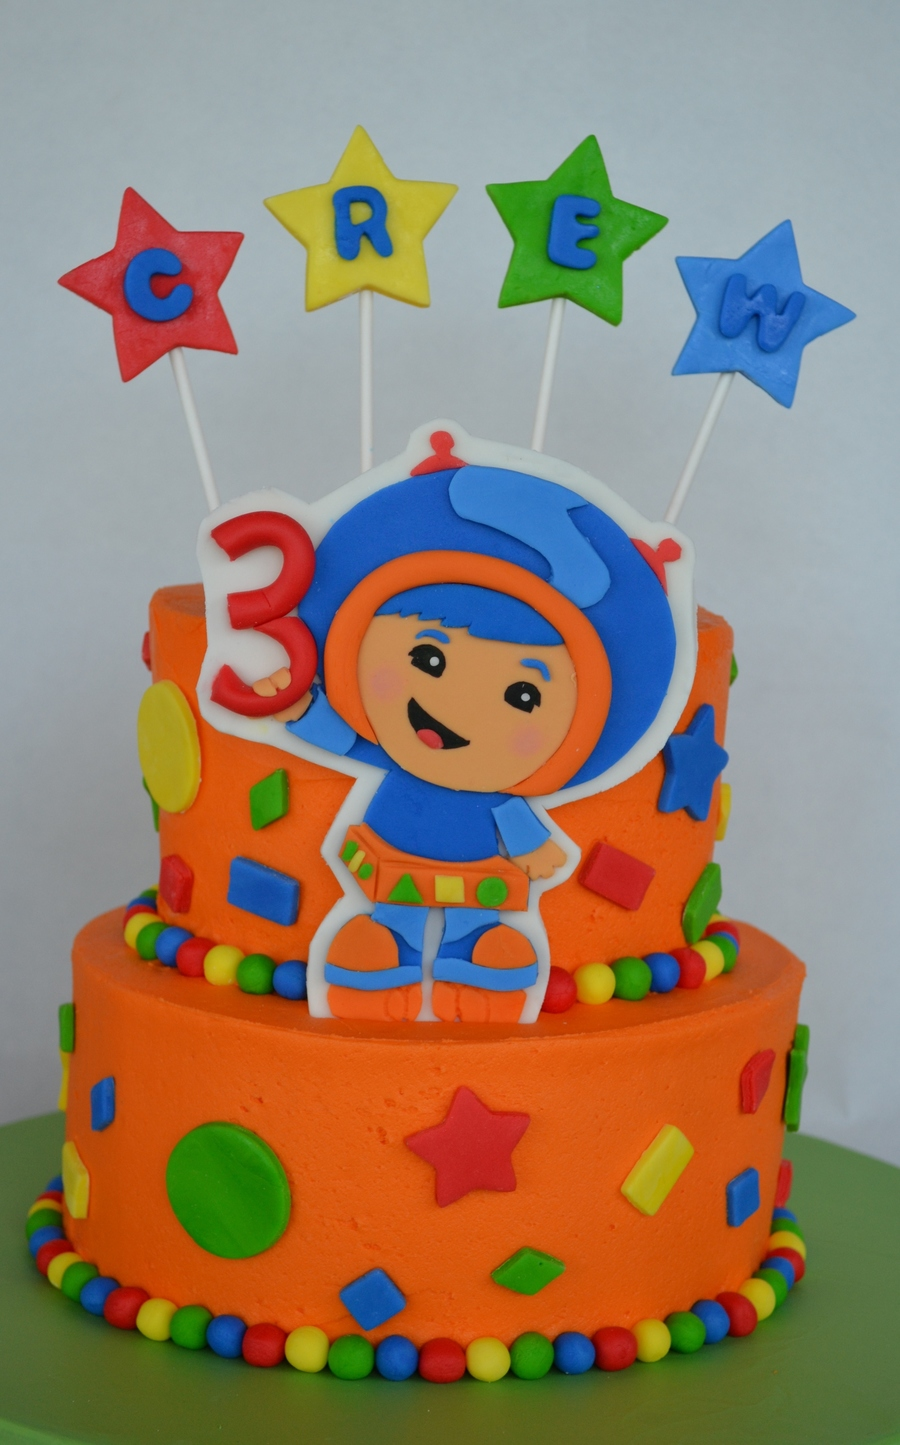 Umizoomi Birthday Cake Ideas